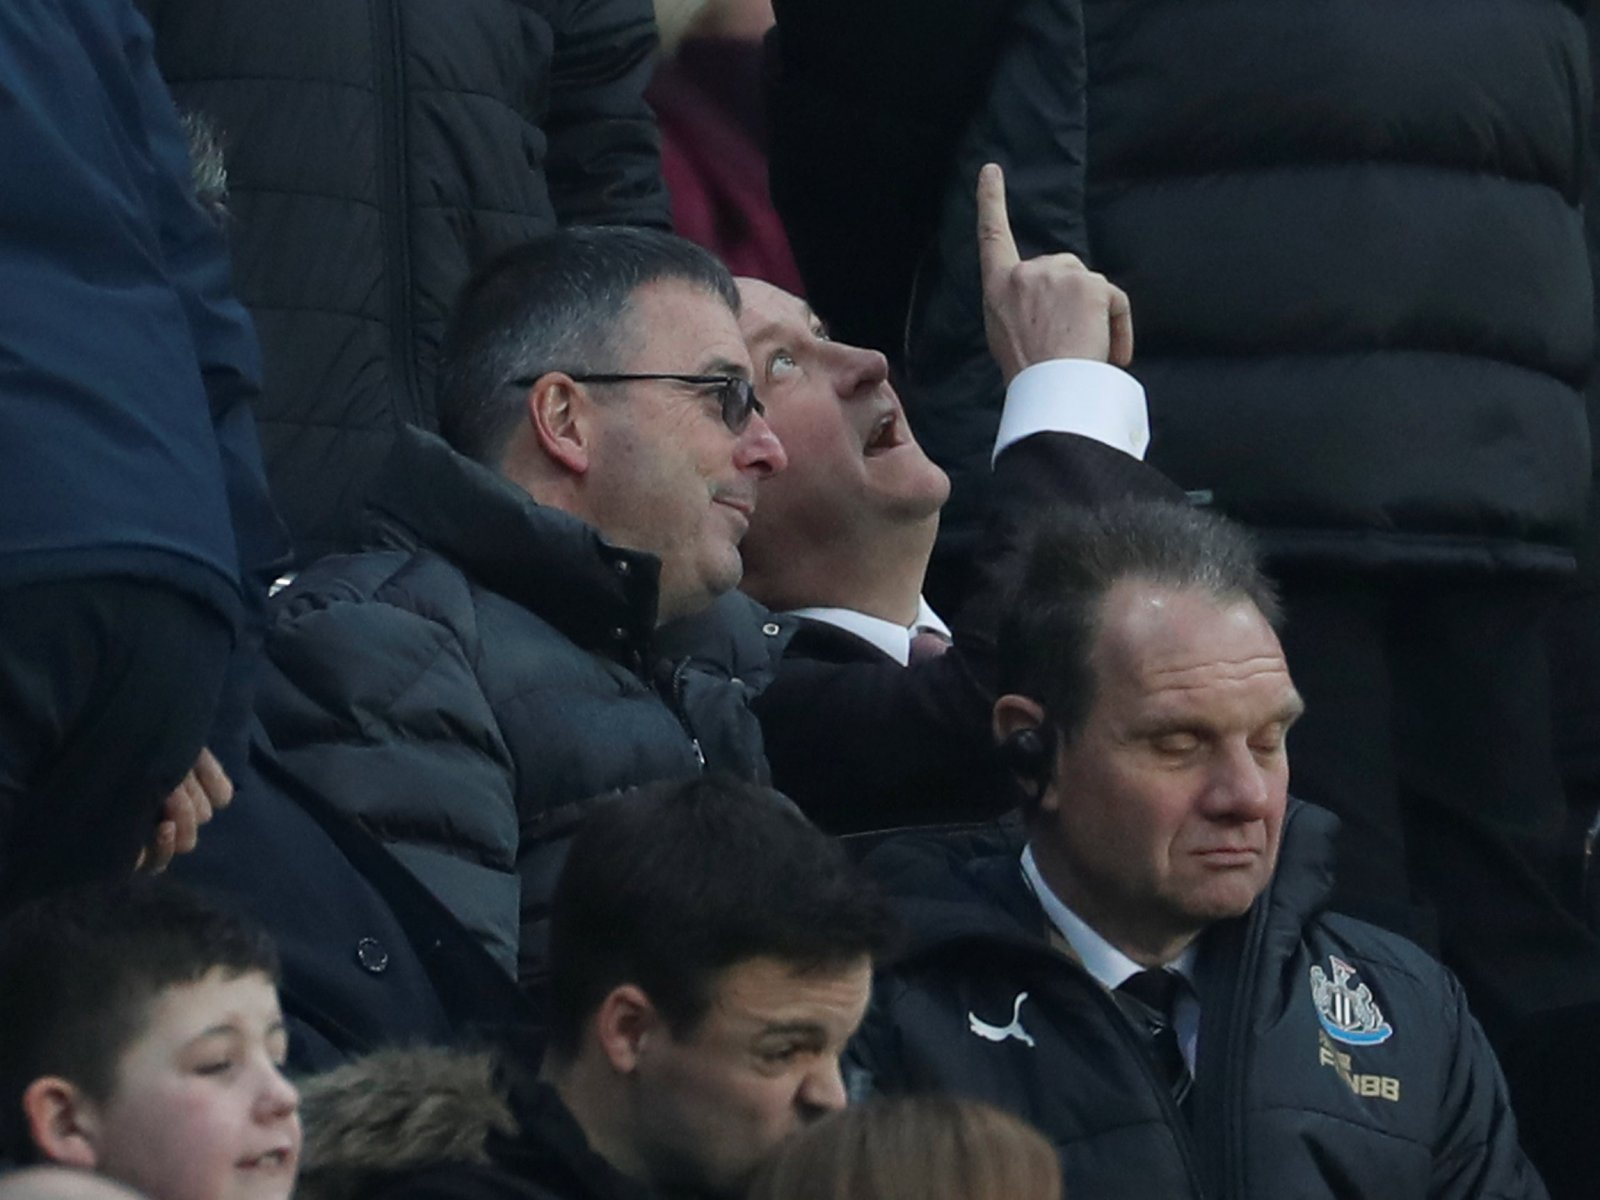 Newcastle fans take to Twitter to slam rumours of NUFC sale